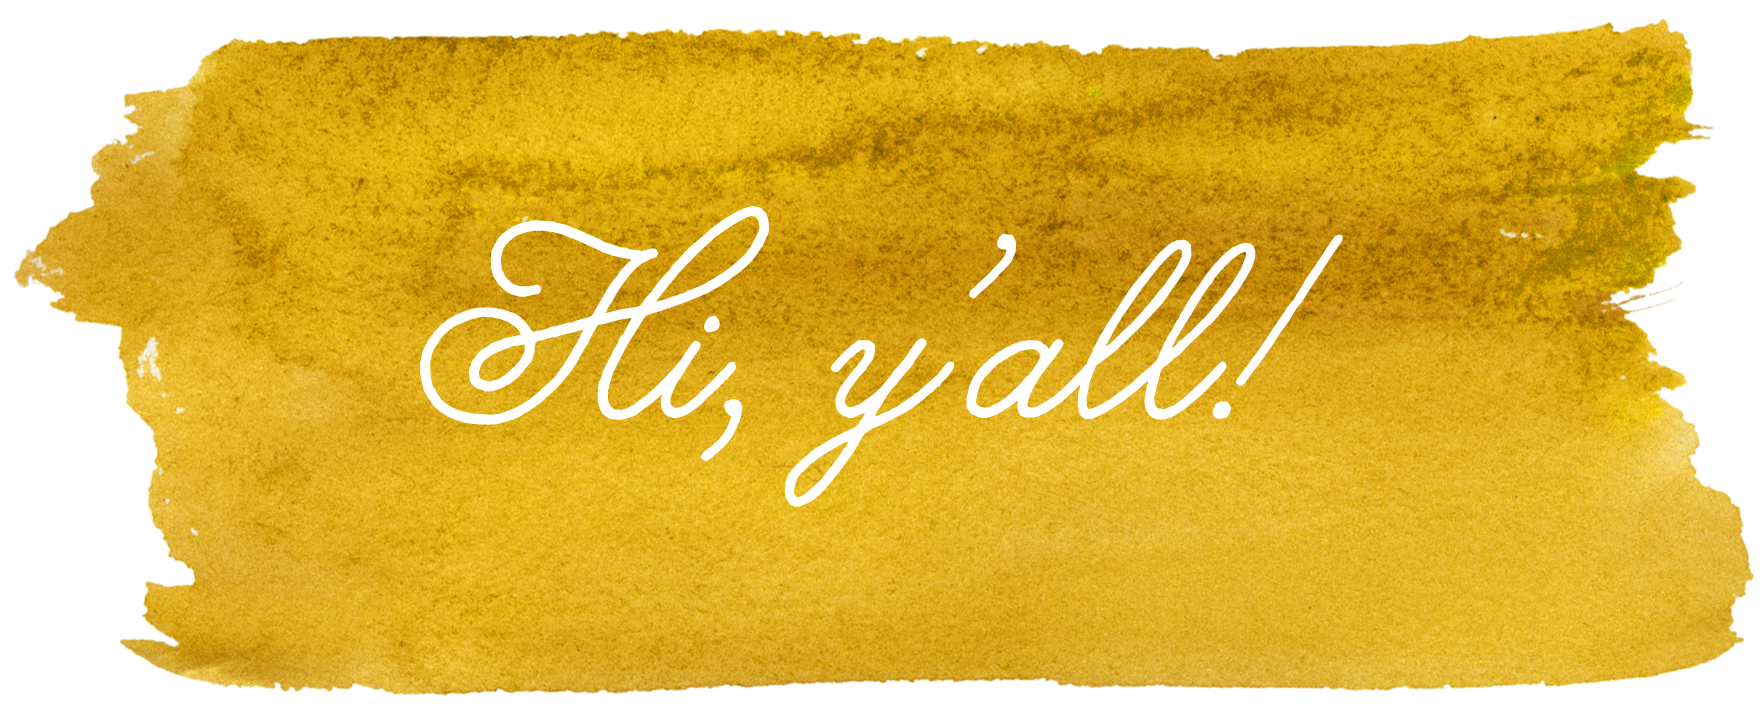 LargePaintStrip_Yellow-whitebg-HIYALL.png